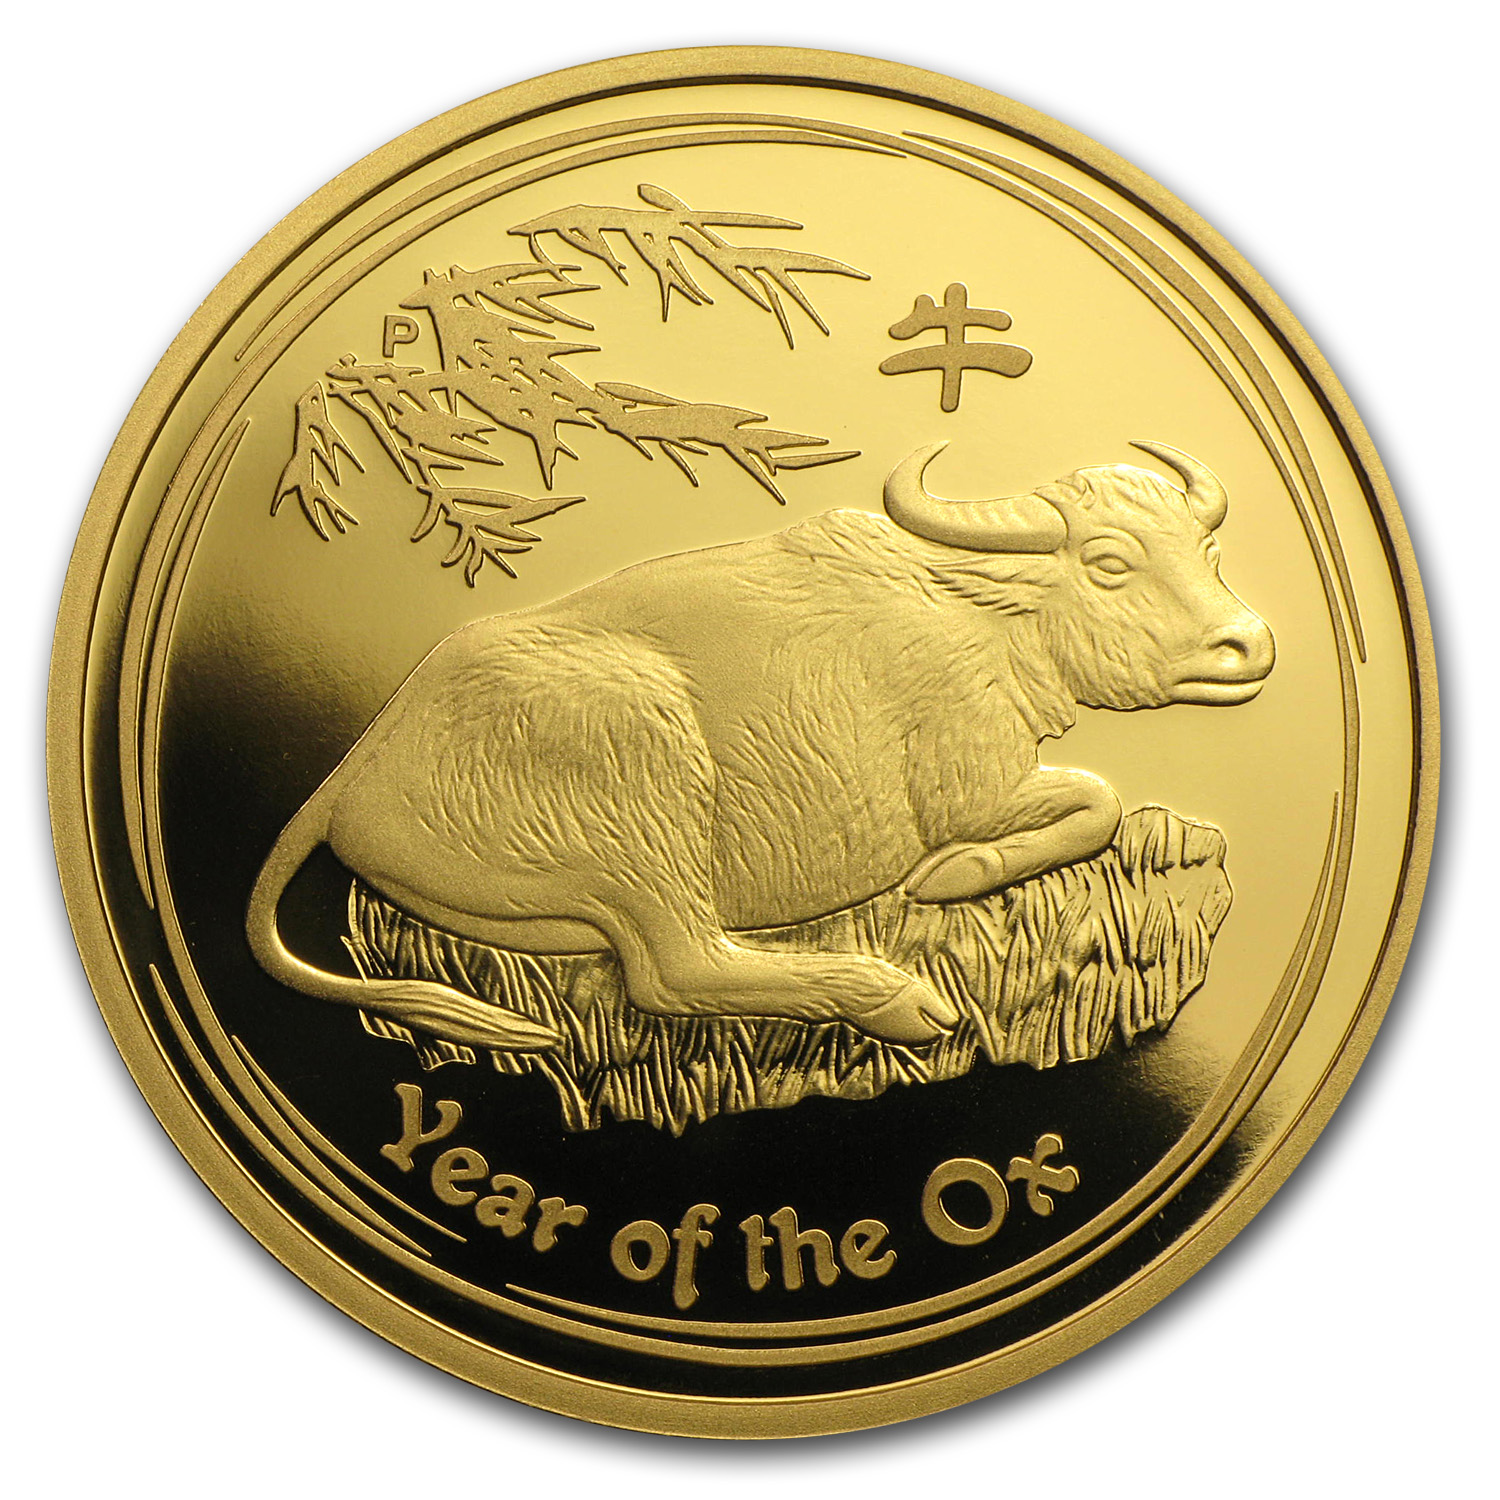 2009 Gold 1 oz Lunar Year of the Ox Proof (Series II)